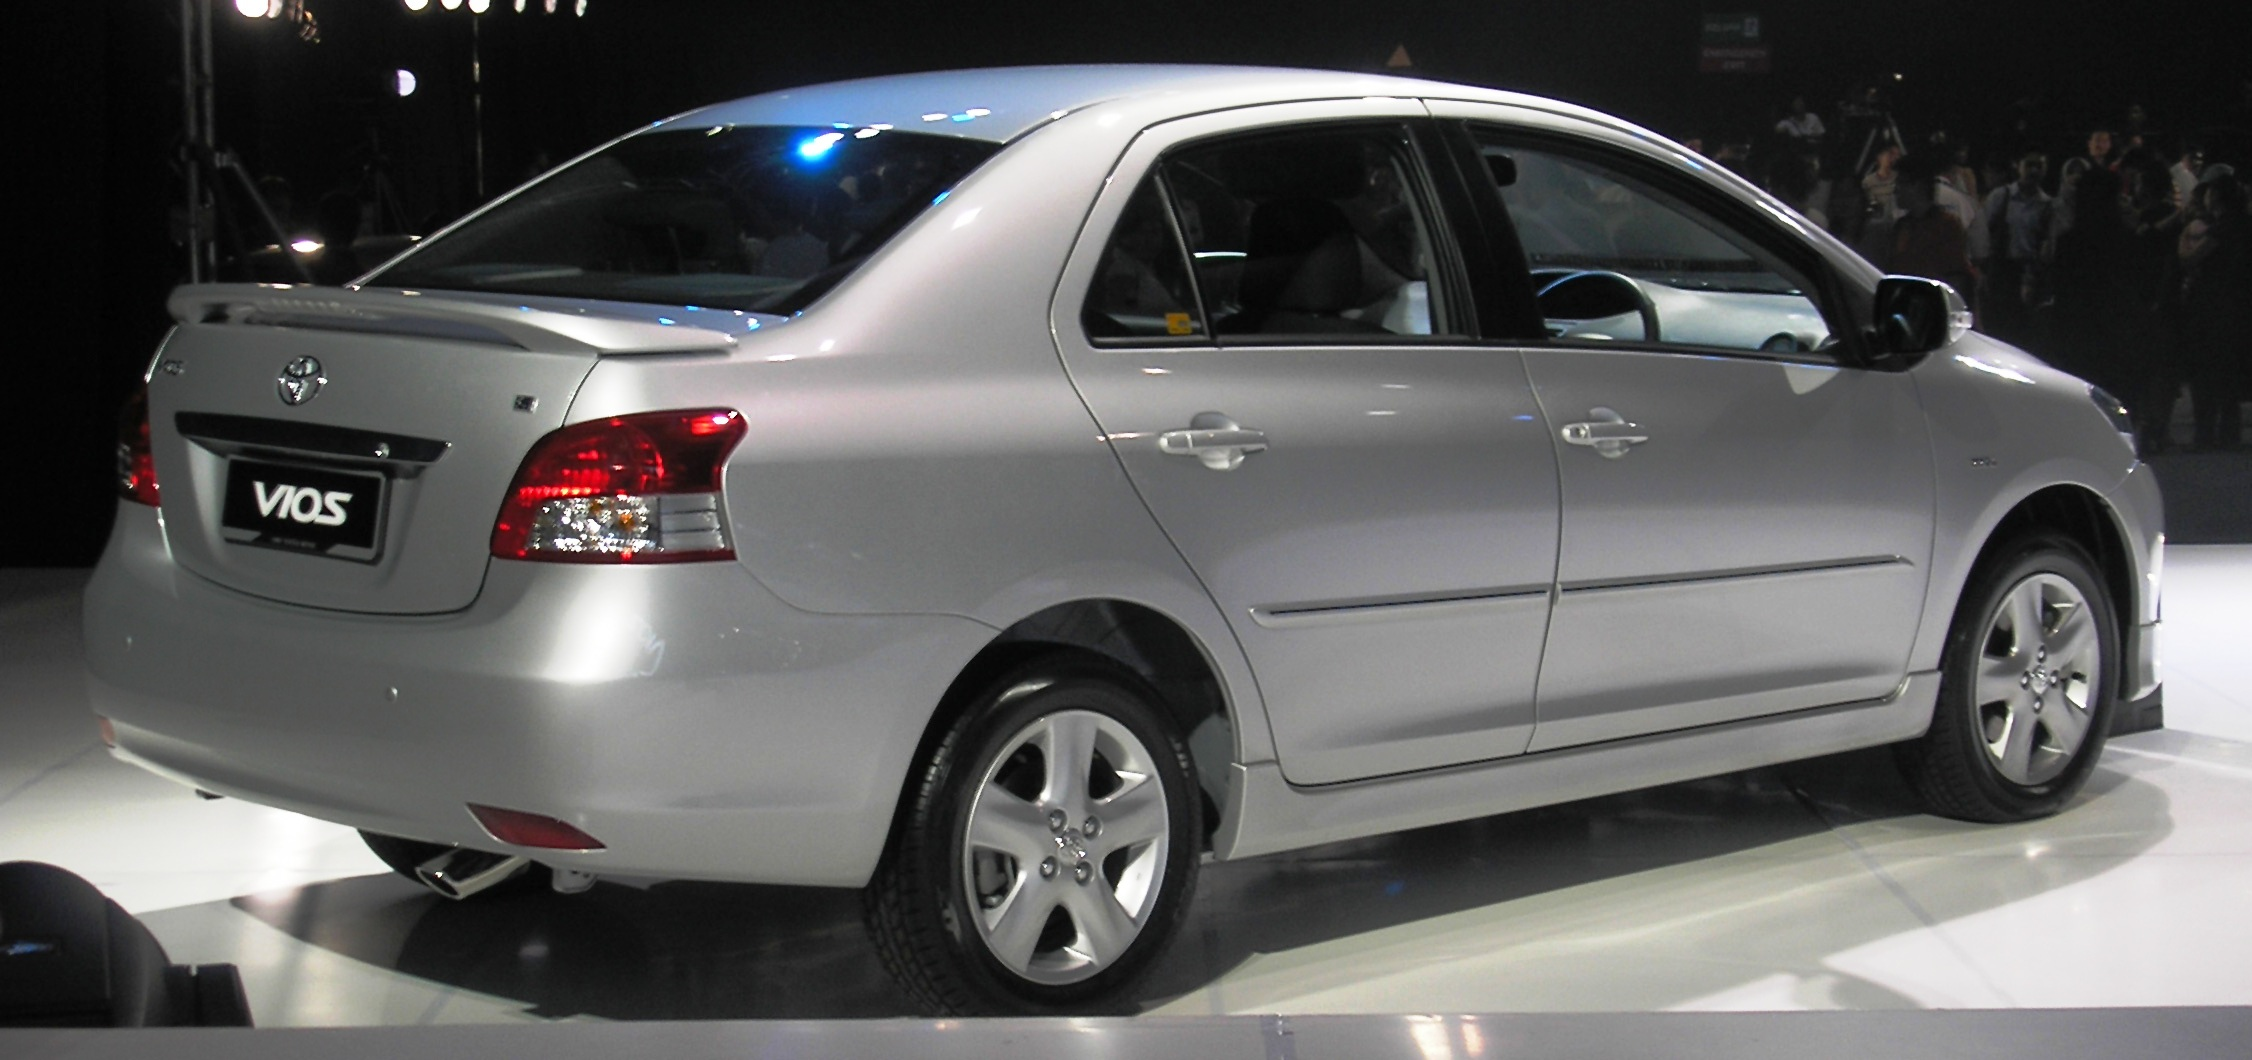 Toyota vios 2008 photo - 3